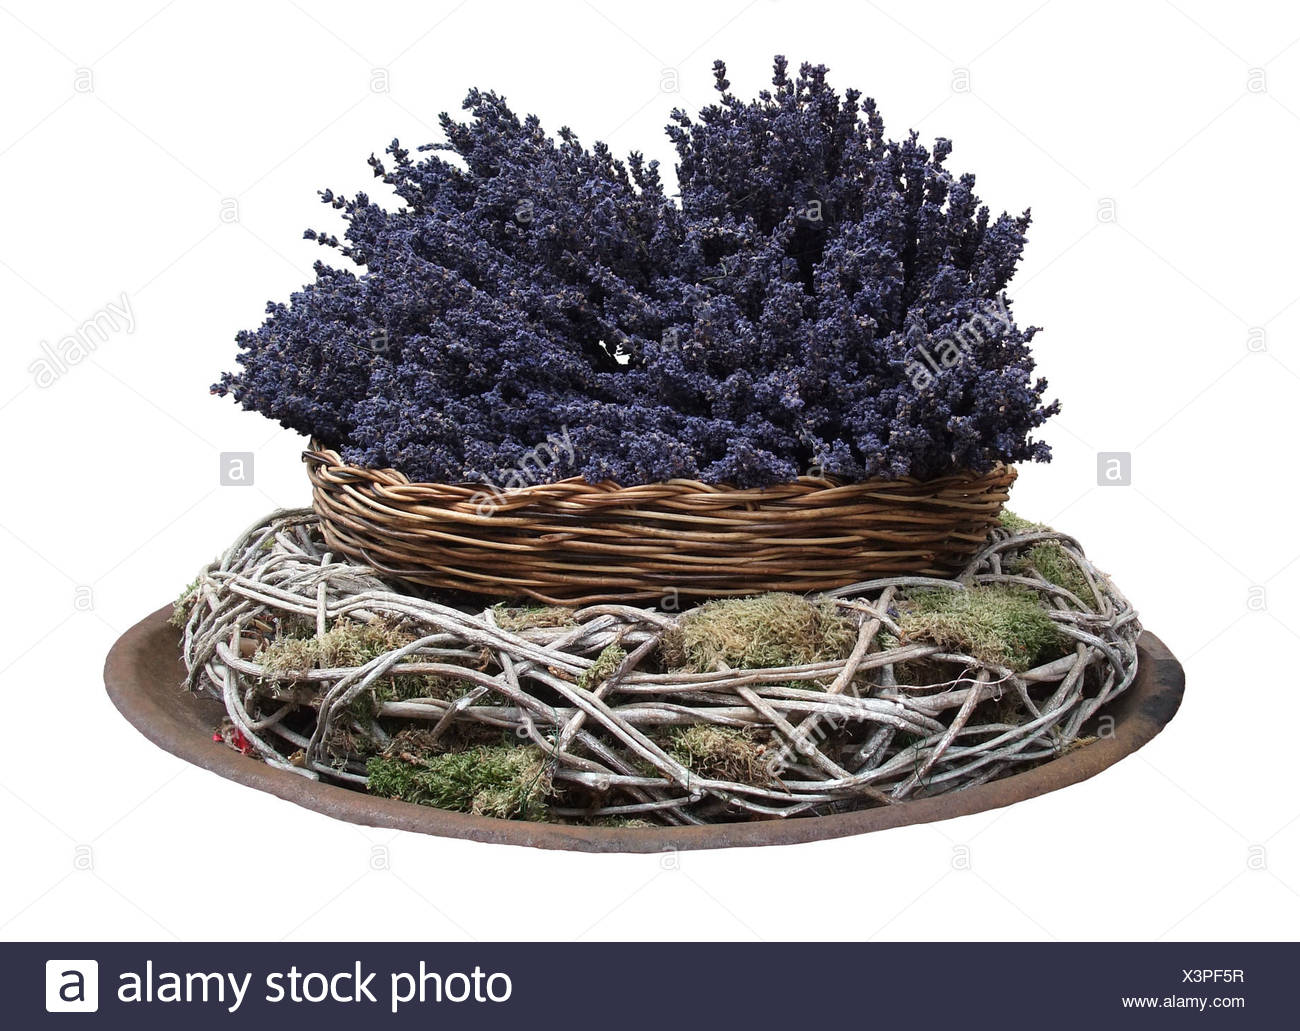 decorative arrangement with lavender flowers in white back - Stock Image